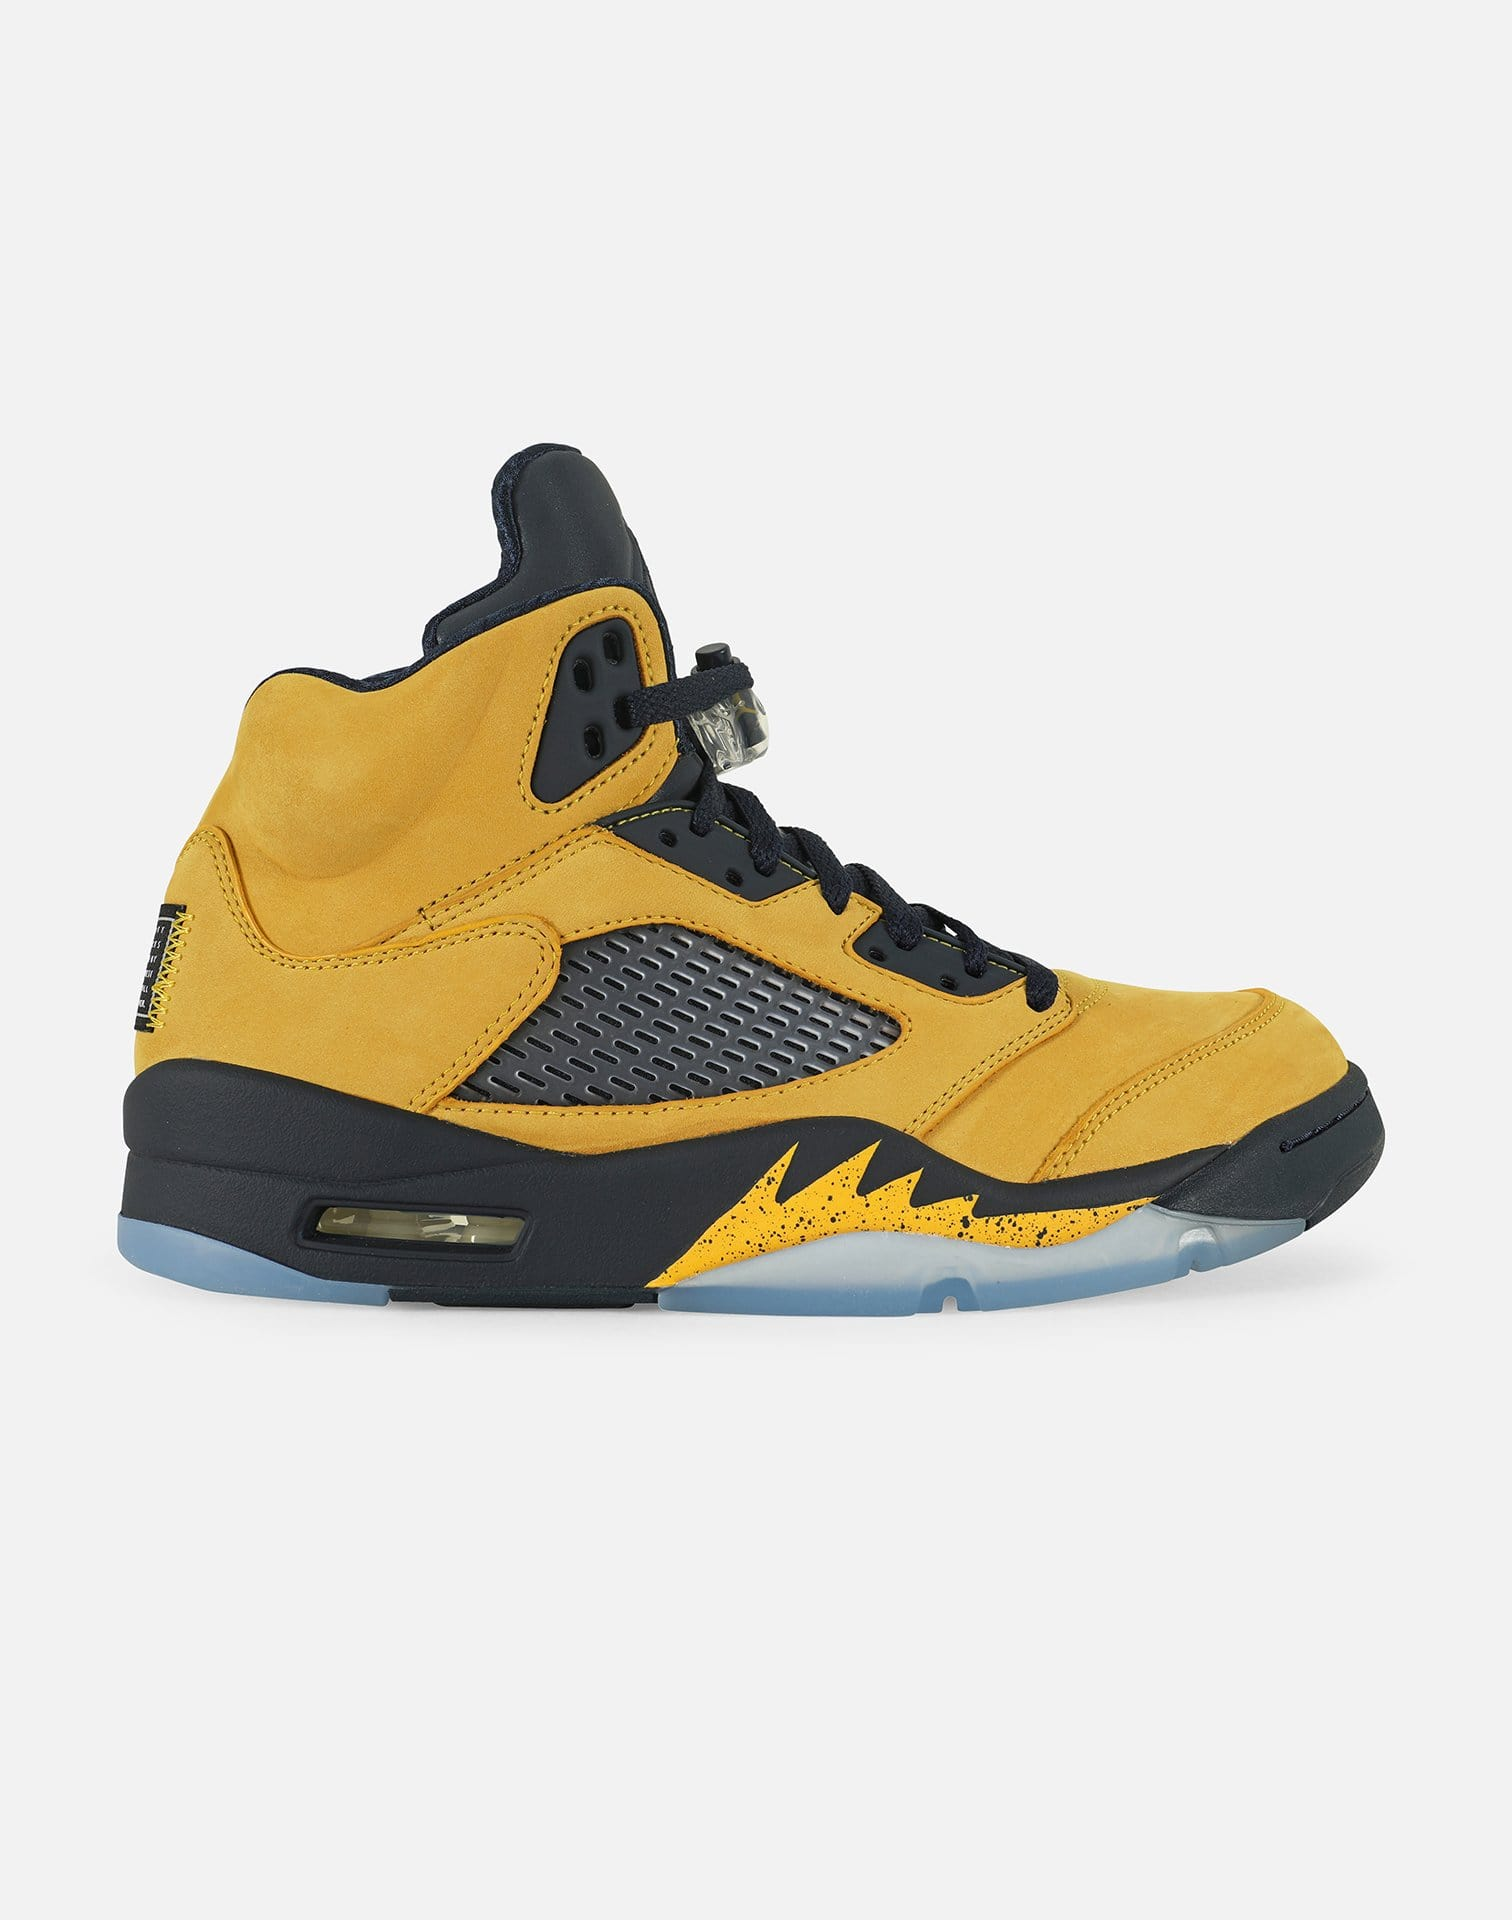 Jordan Men's Air Jordan Retro 5 'Michigan'